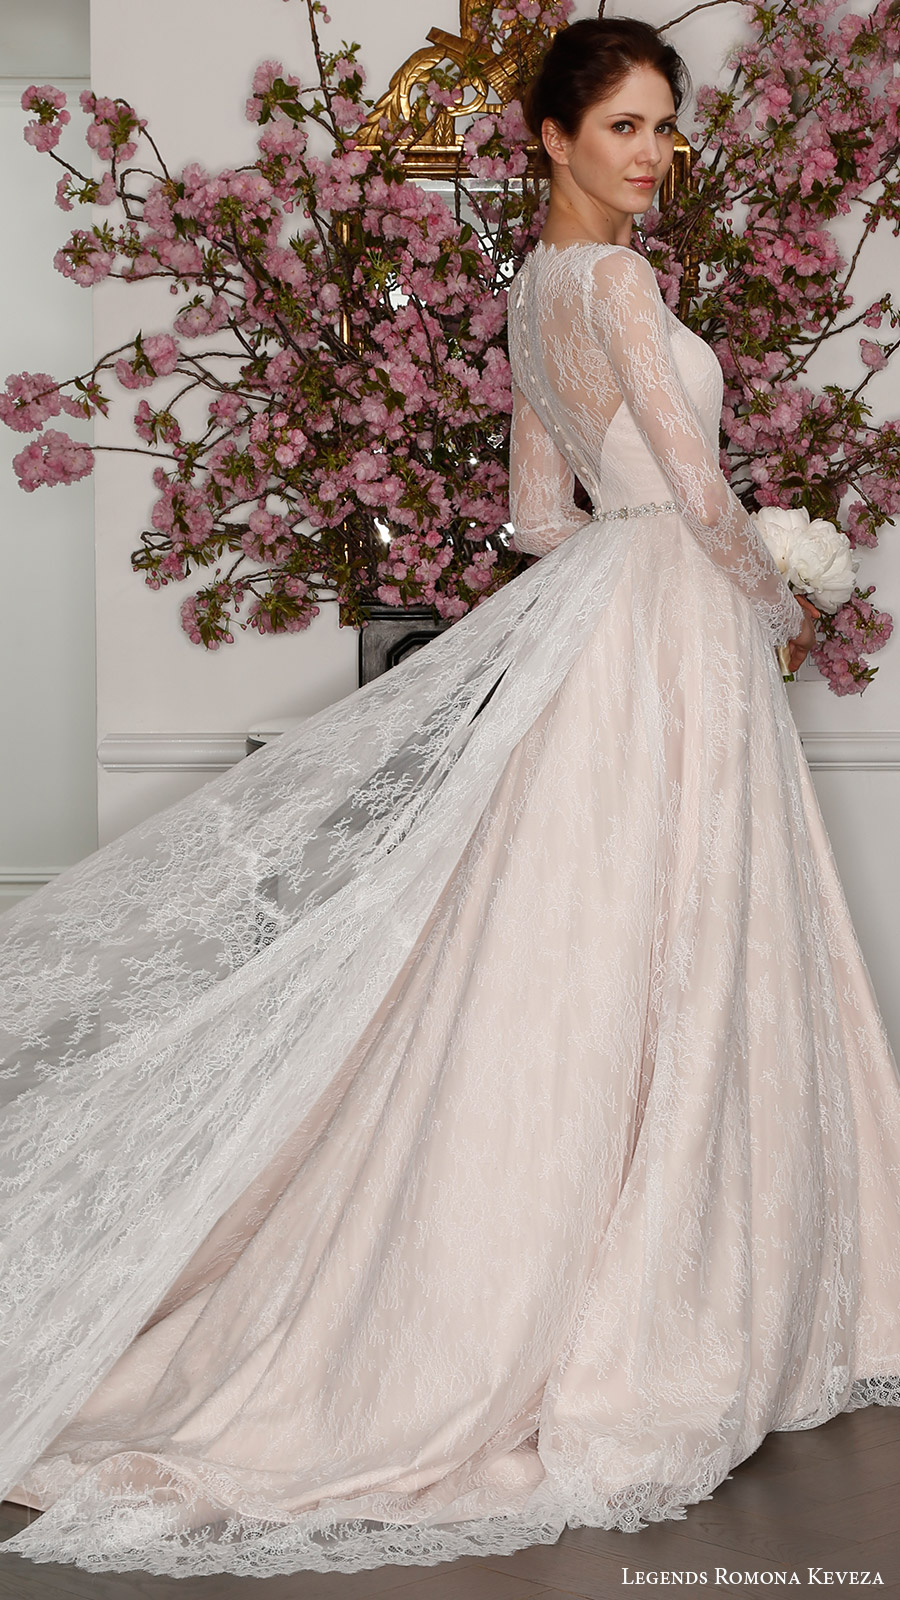 legends romona keveza bridal spring 2017 illusion long sleeve boat neck aline lace wedding dress (l7127) bv blush color train